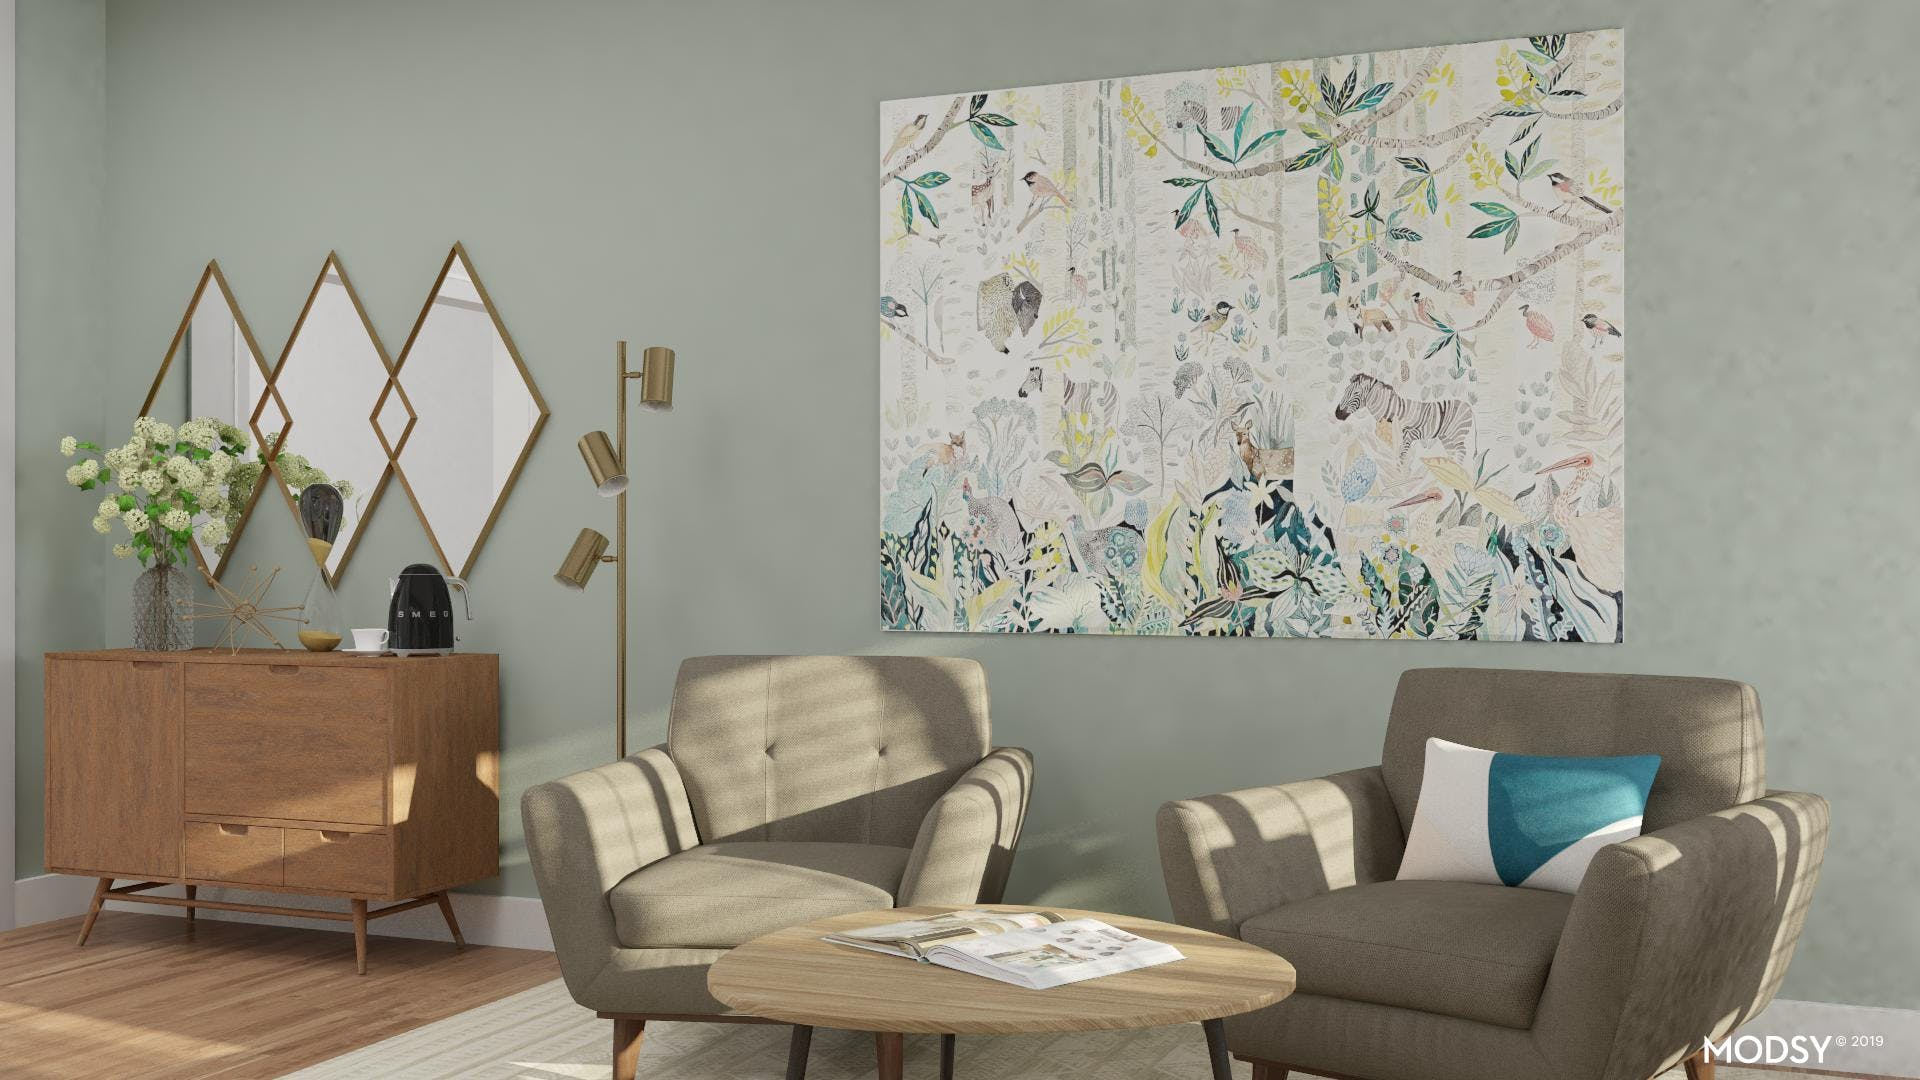 Mid-century Modern: Brass and Wood Accents